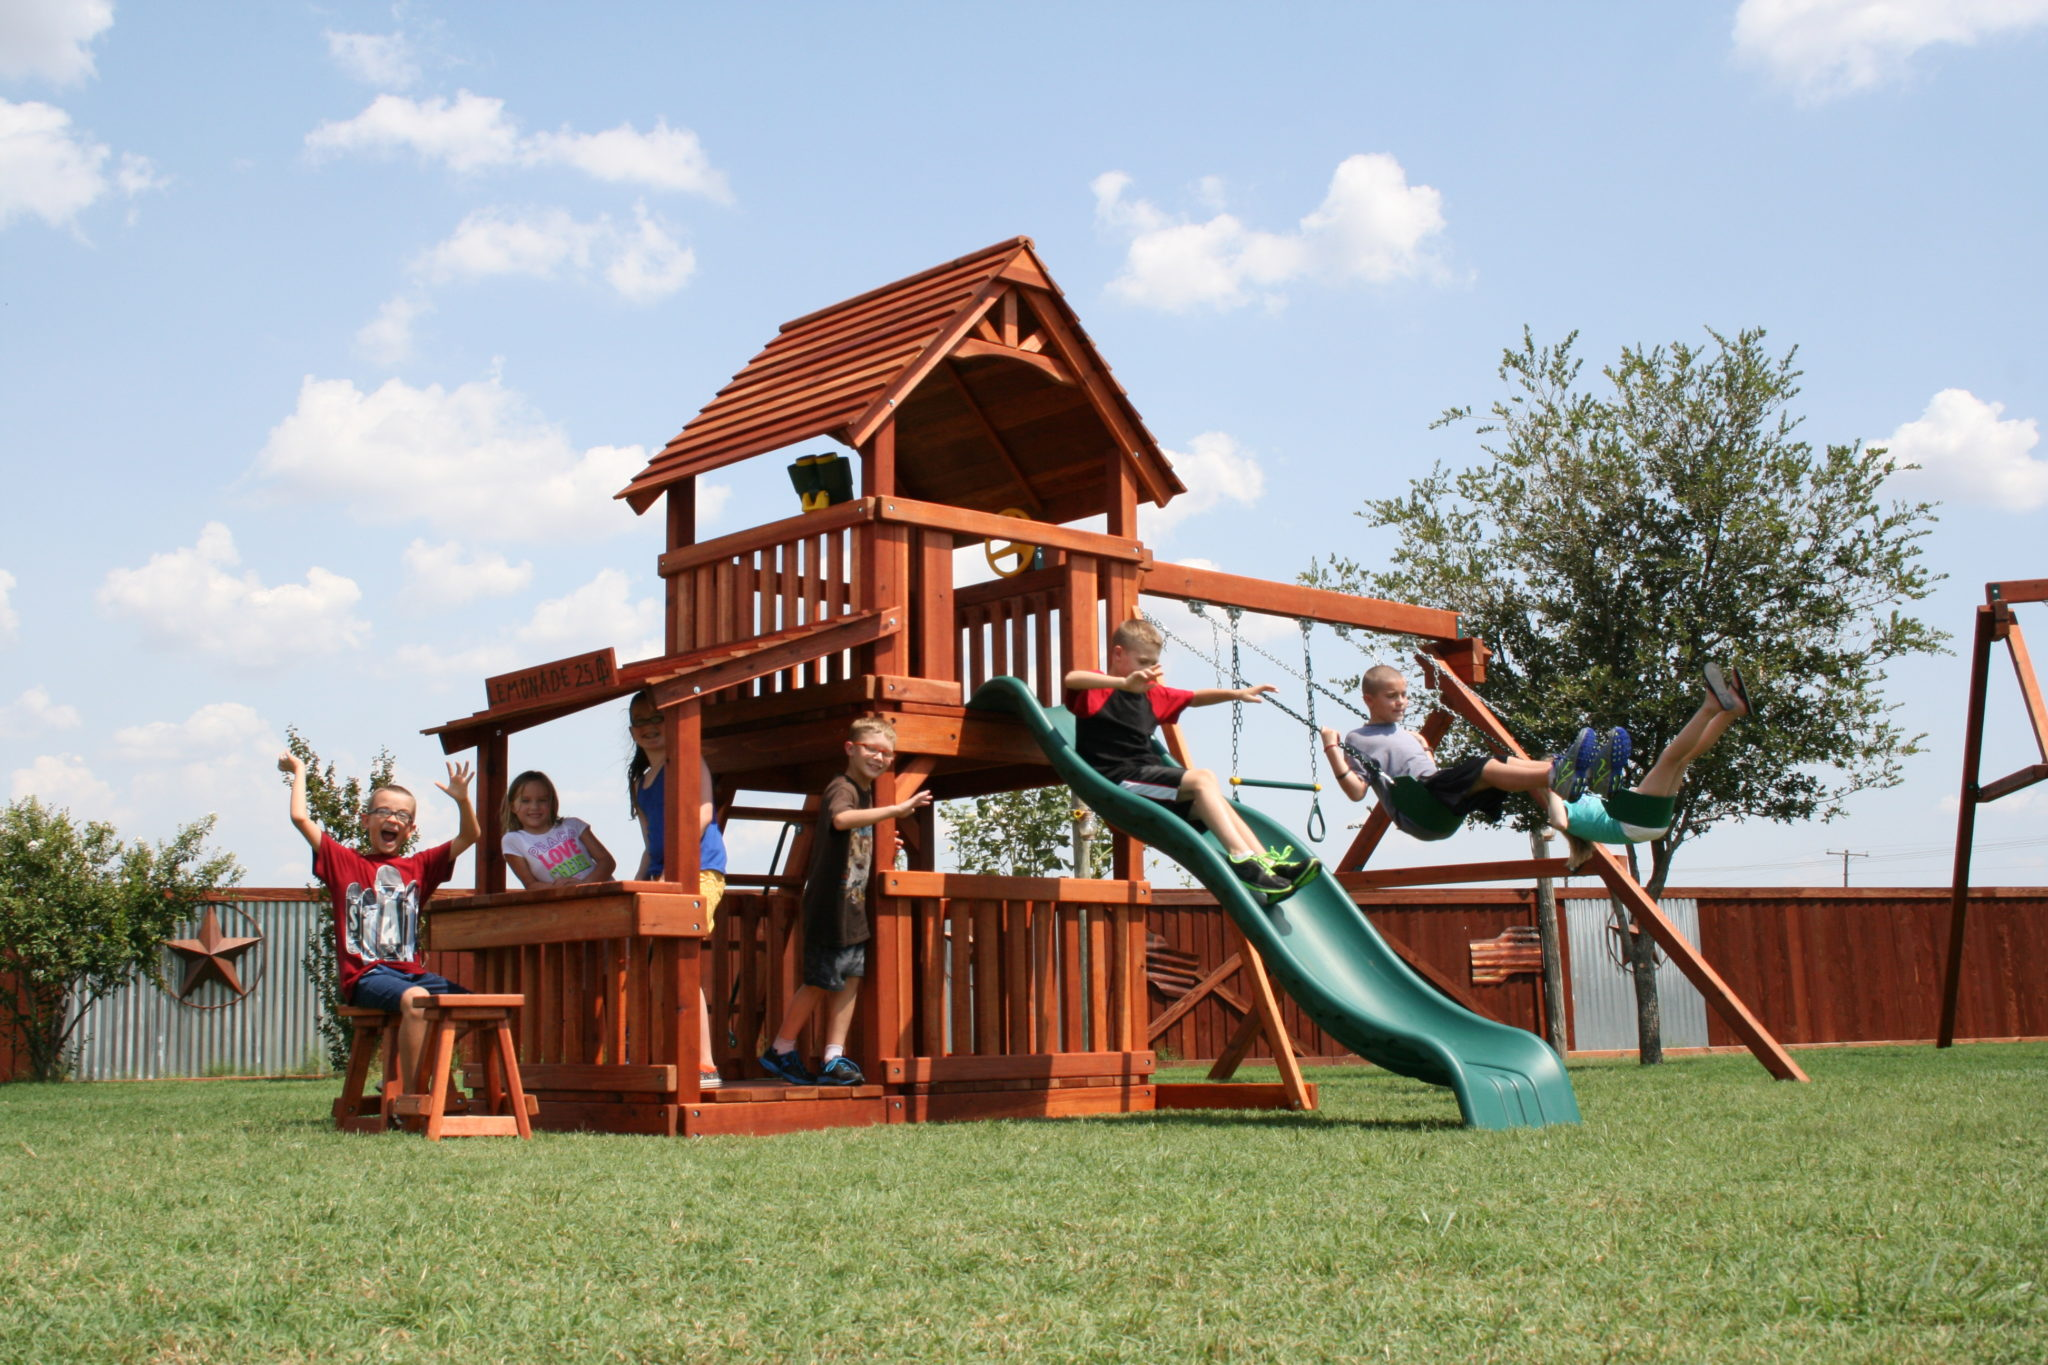 This 6 Foot Fort Davis Redwood Playset Features A Slide, A Swing Set, And